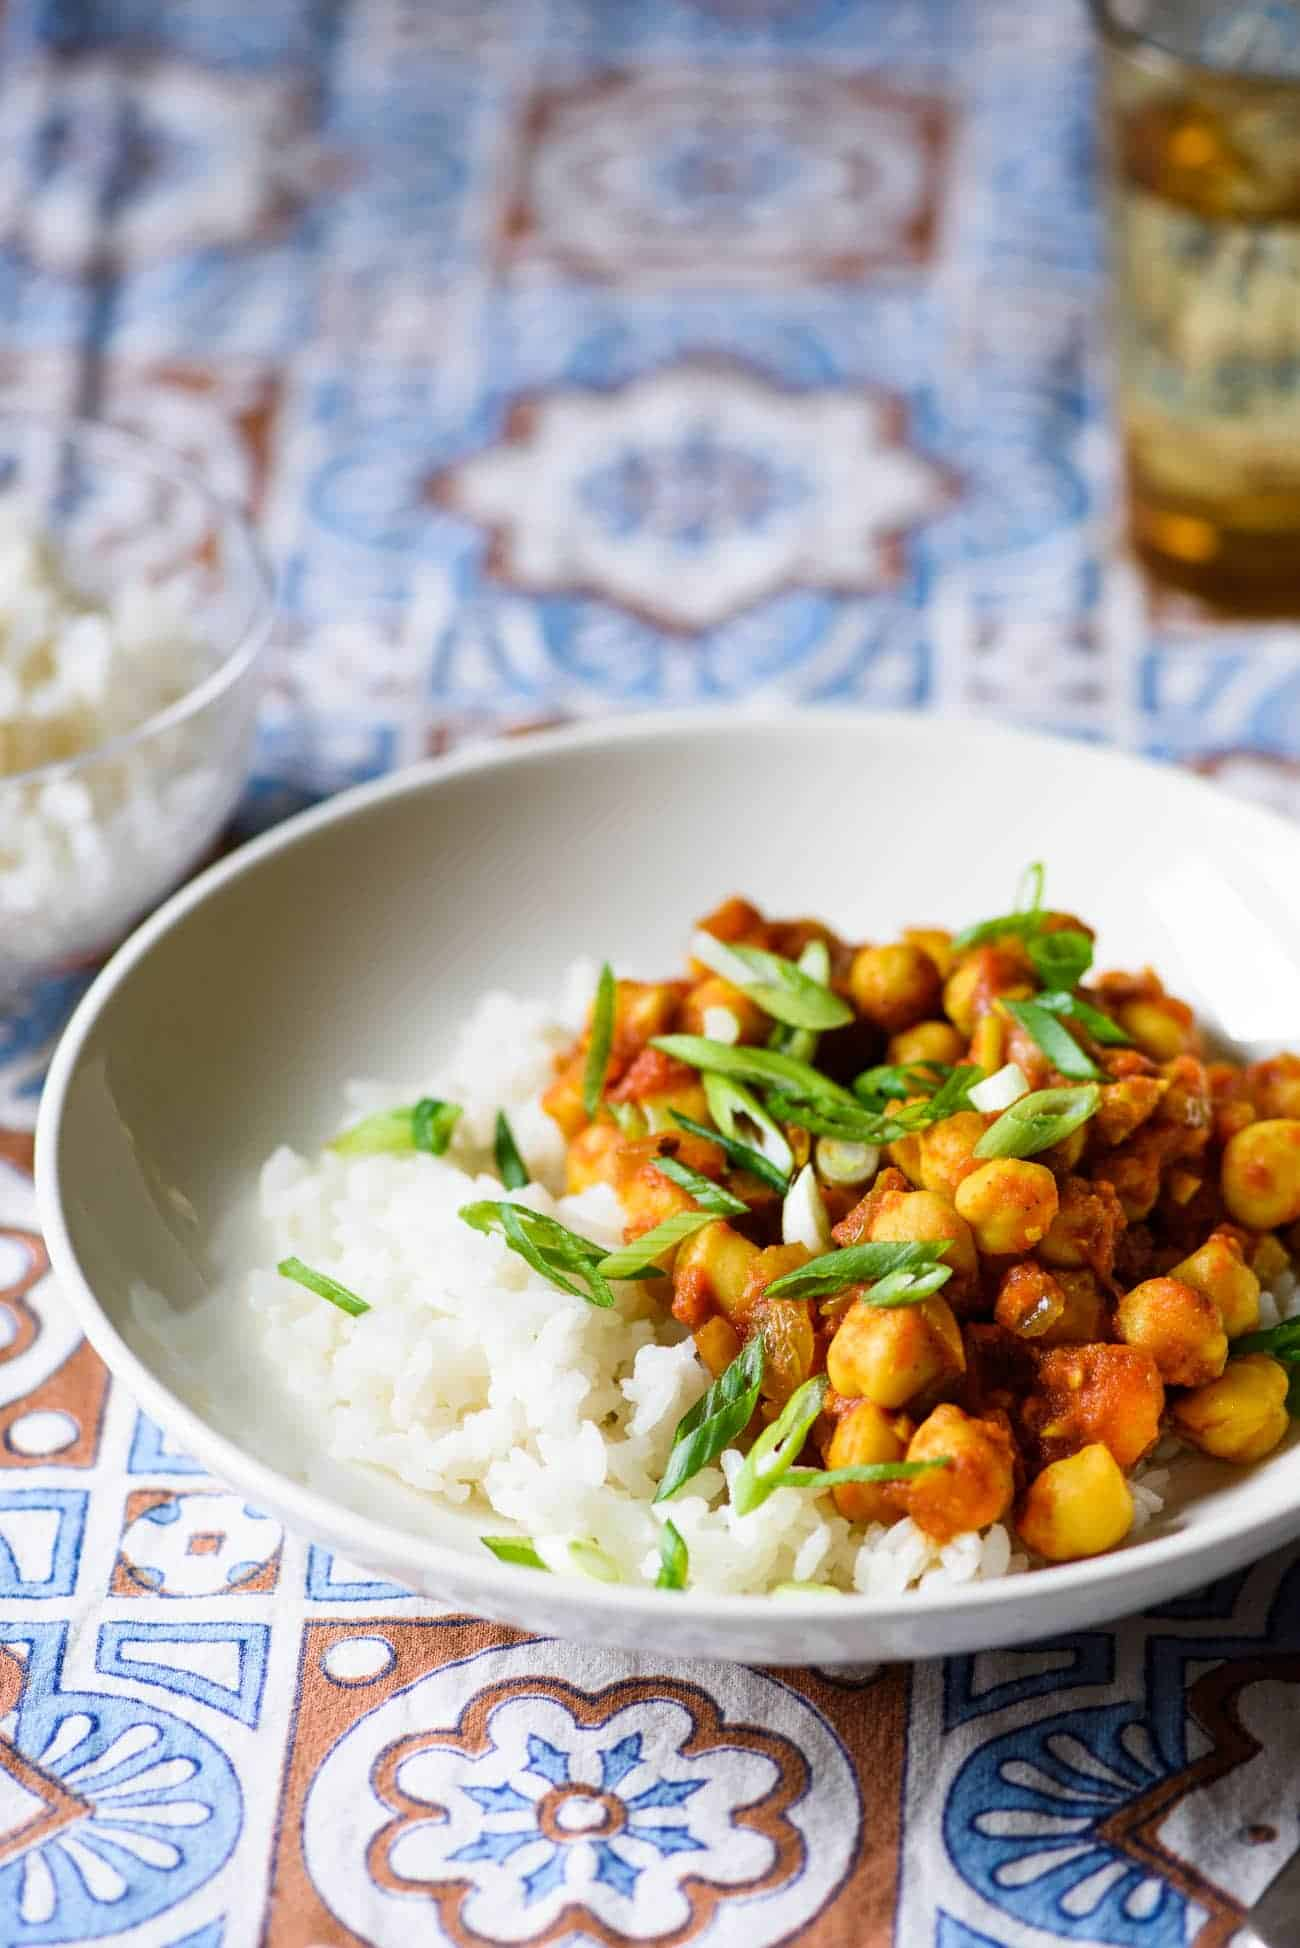 Bowl of chana masala on an Indian-patterned tablecloth